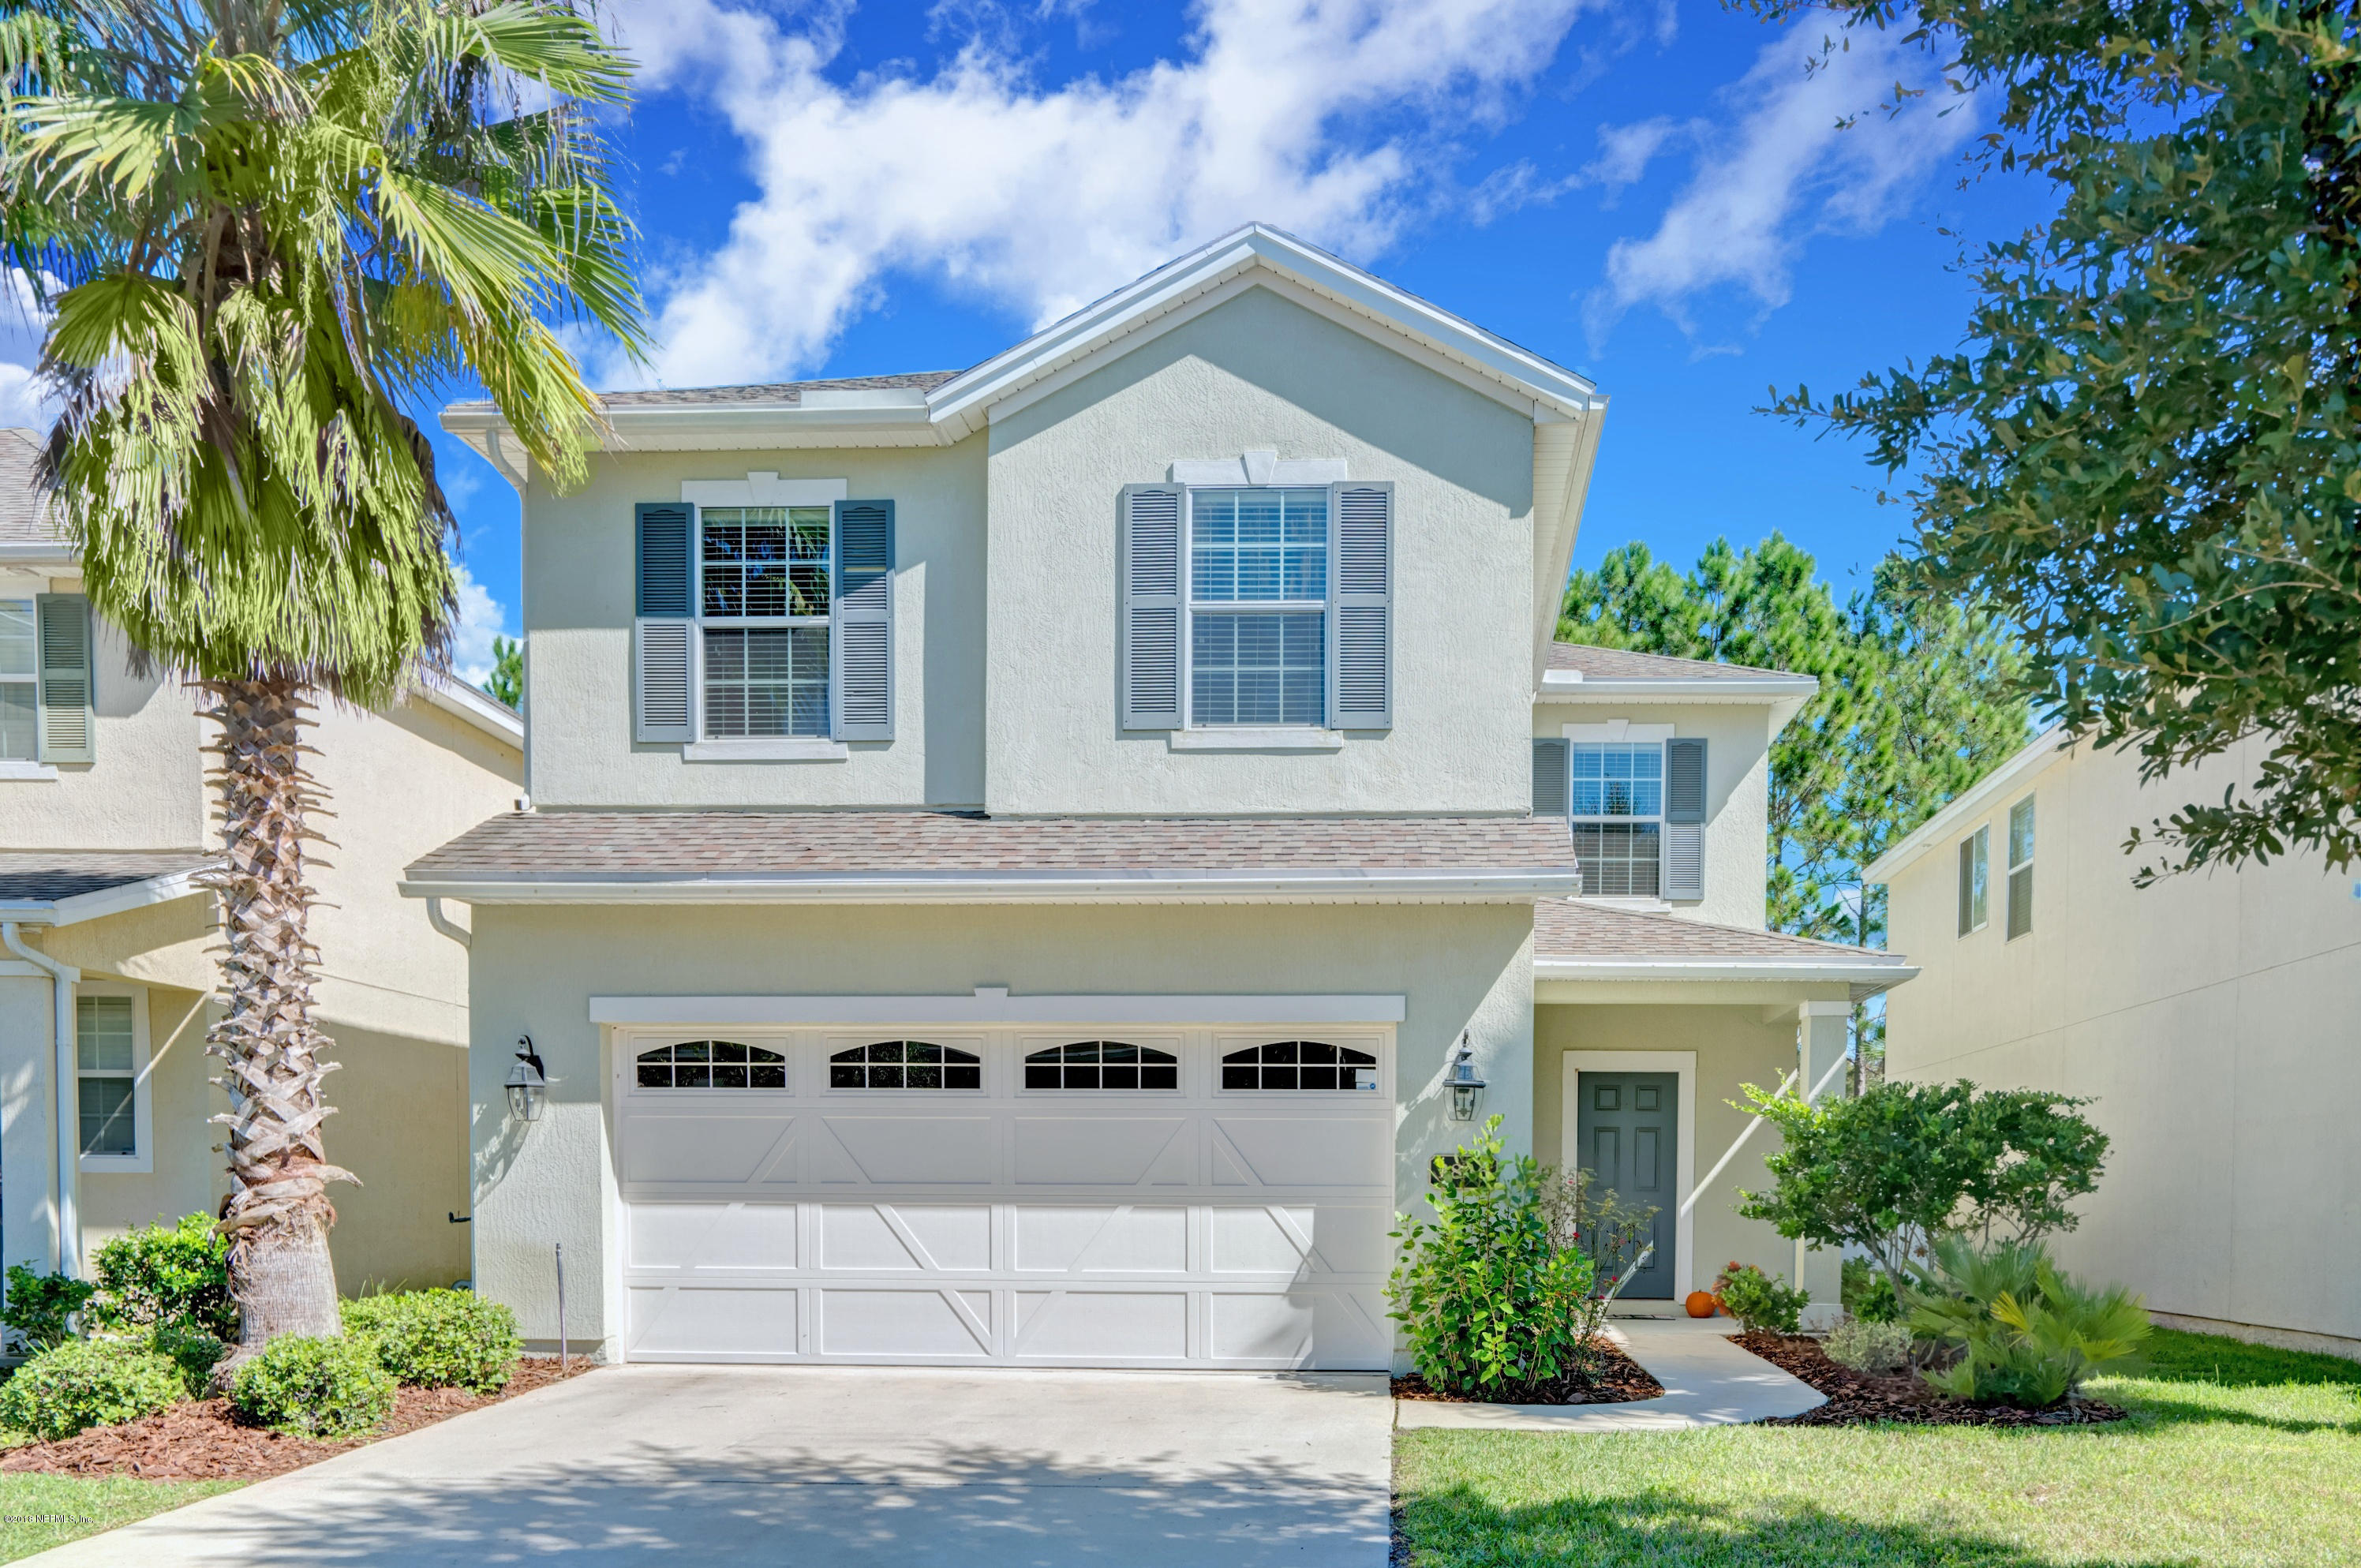 3846 CHASING FALLS, ORANGE PARK, FLORIDA 32065, 4 Bedrooms Bedrooms, ,2 BathroomsBathrooms,Residential - single family,For sale,CHASING FALLS,962899